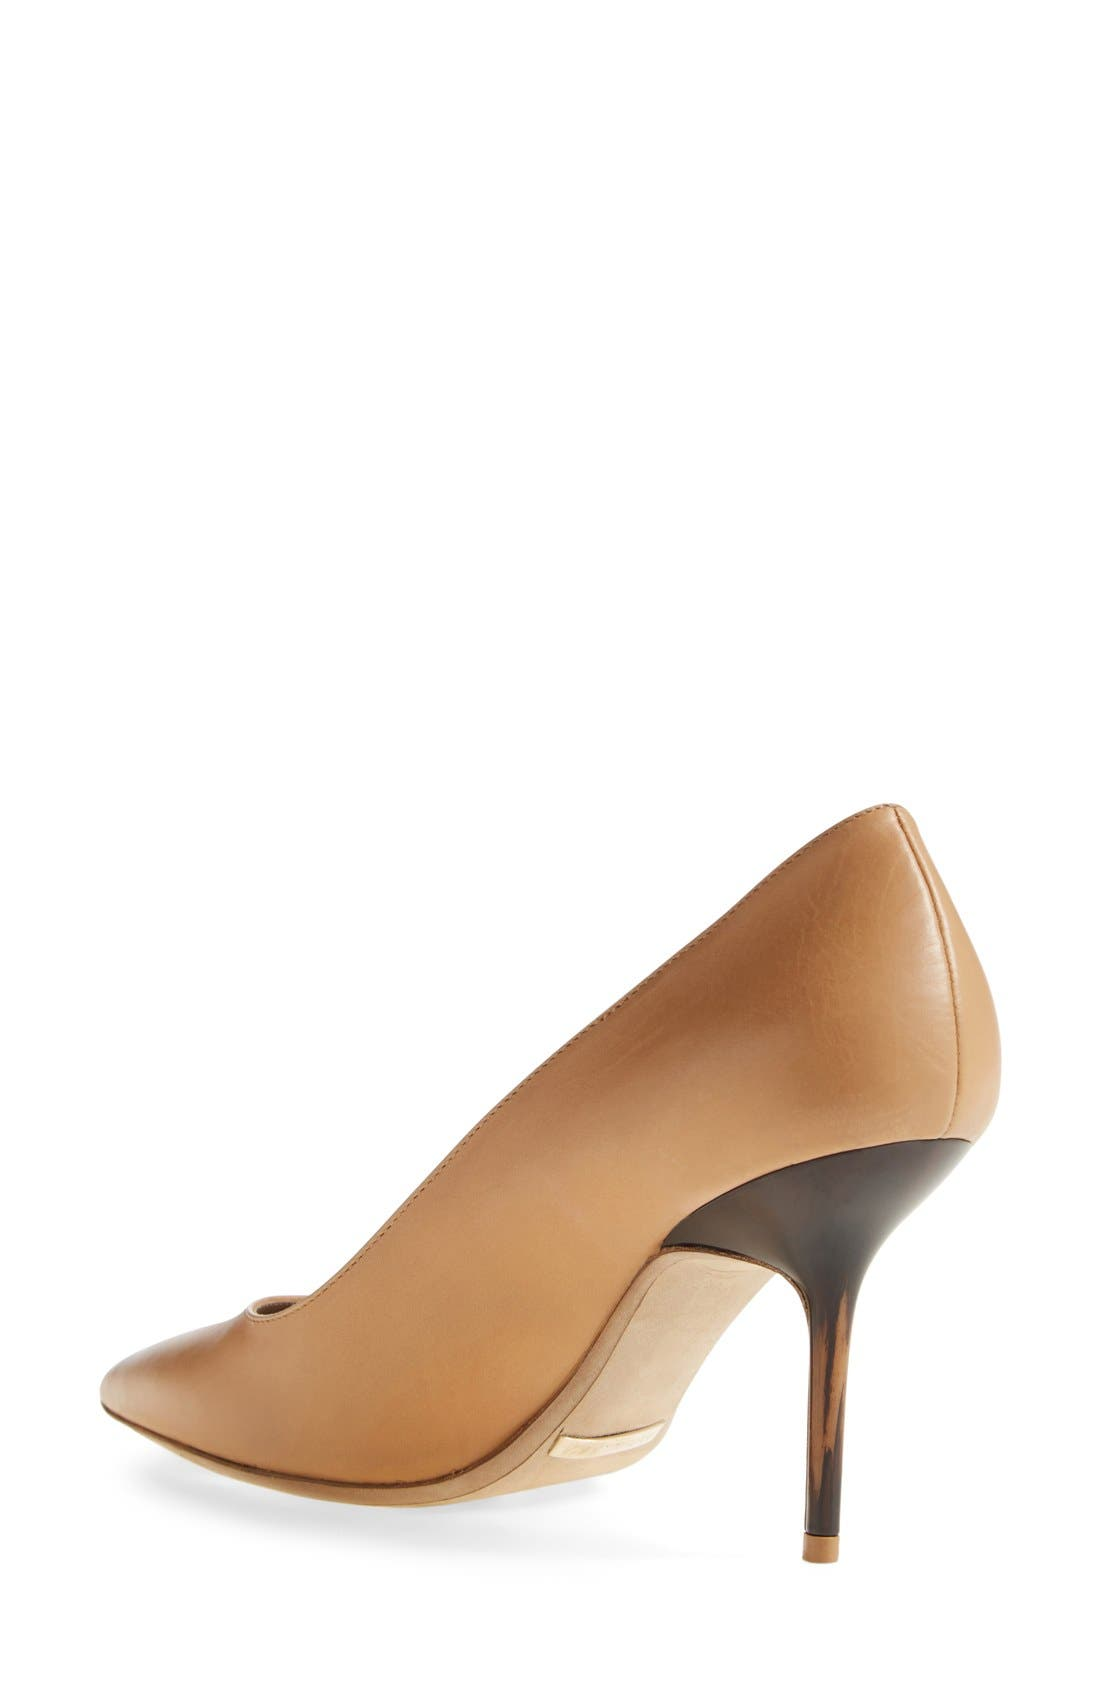 'Mawdesley' Pointy Toe Pump,                             Alternate thumbnail 2, color,                             Nude